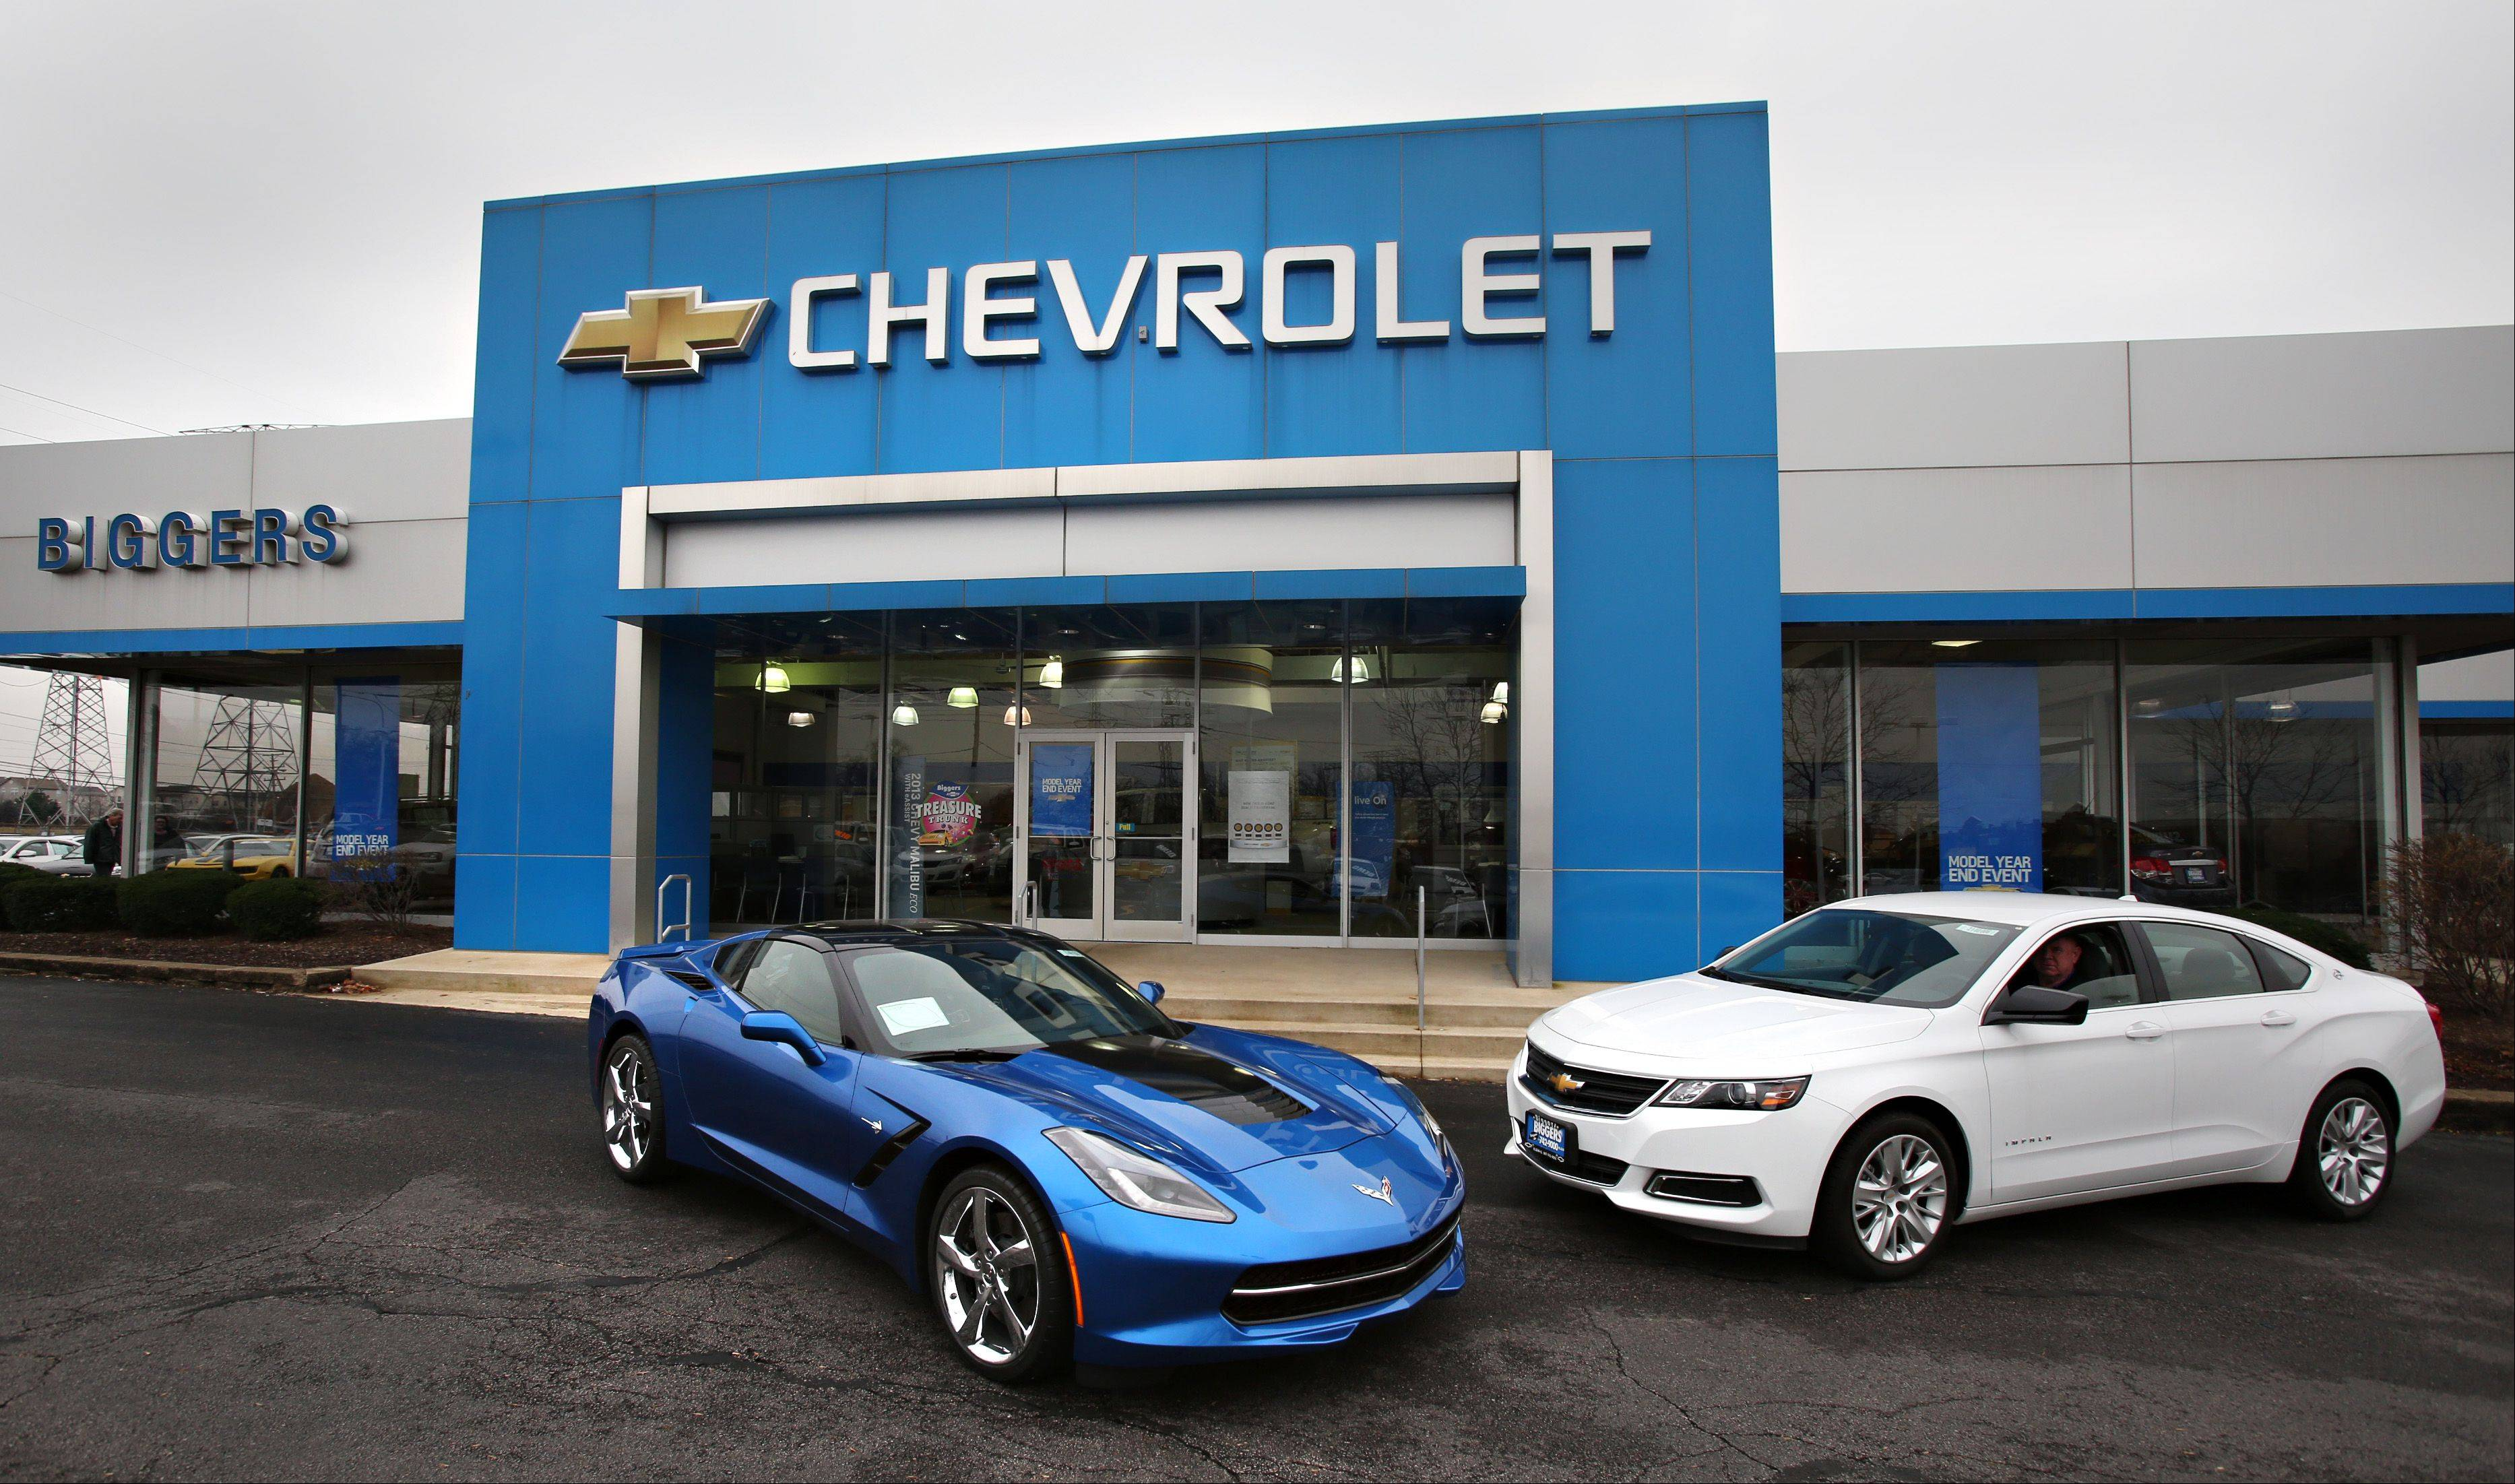 The Chevrolet Corvette Stingray, left, and Impala at Biggers Chevrolet in Elgin. Both models were given significant redesigns for 2014 that have earned rave reviews.